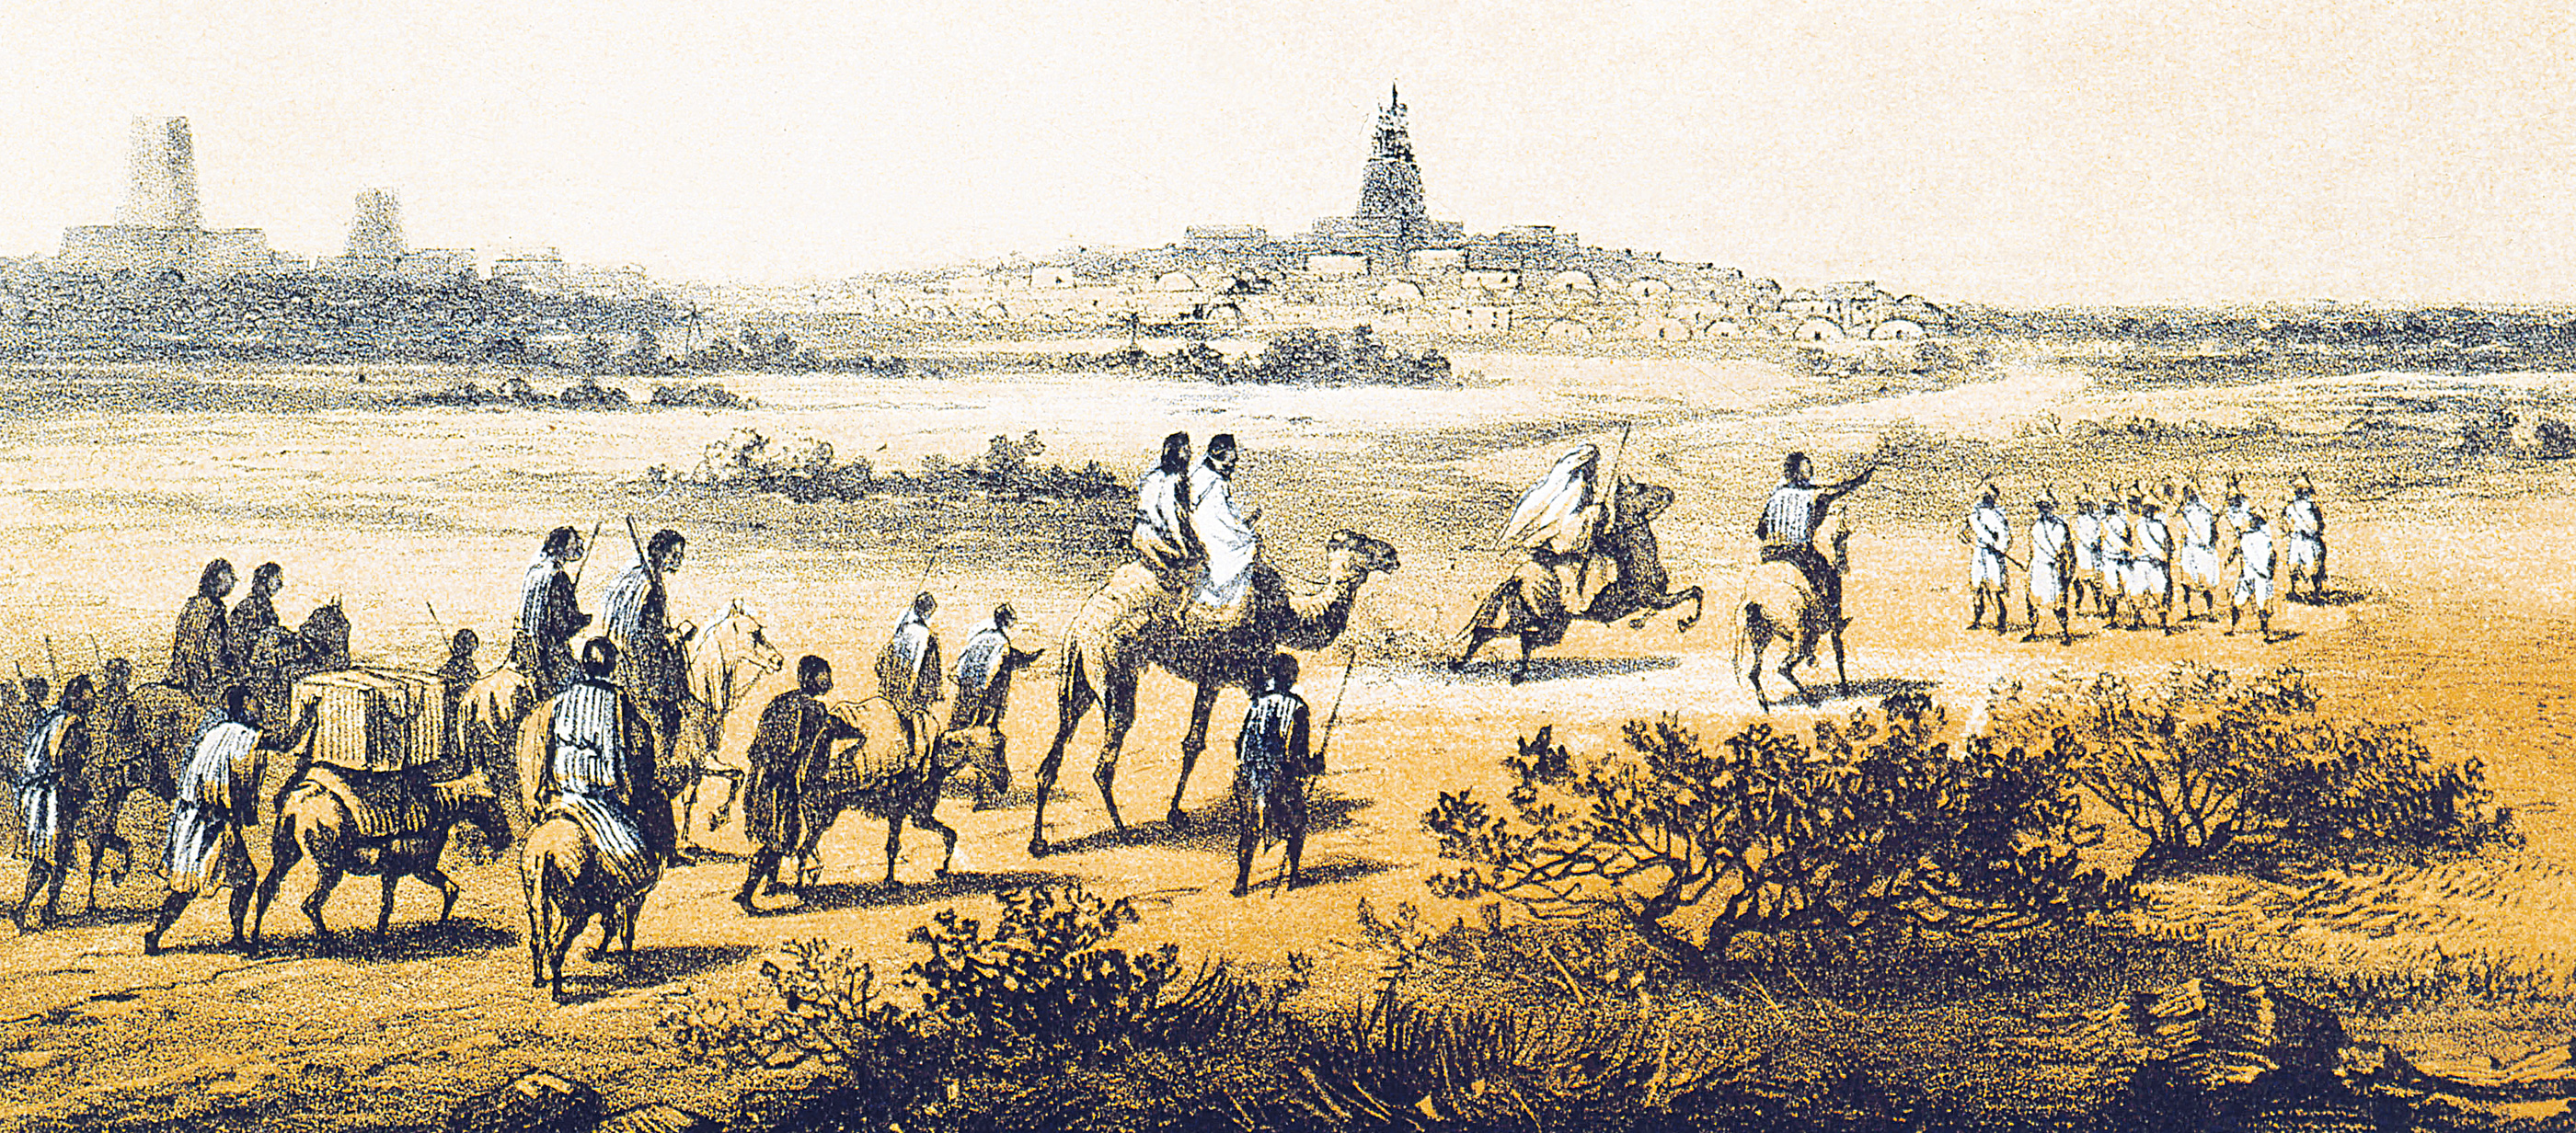 Arrival at Timbuctoo, Mali, illustration from Heinrich Barth's Travels and Discoveries in North and Central Africa, c. 1857.